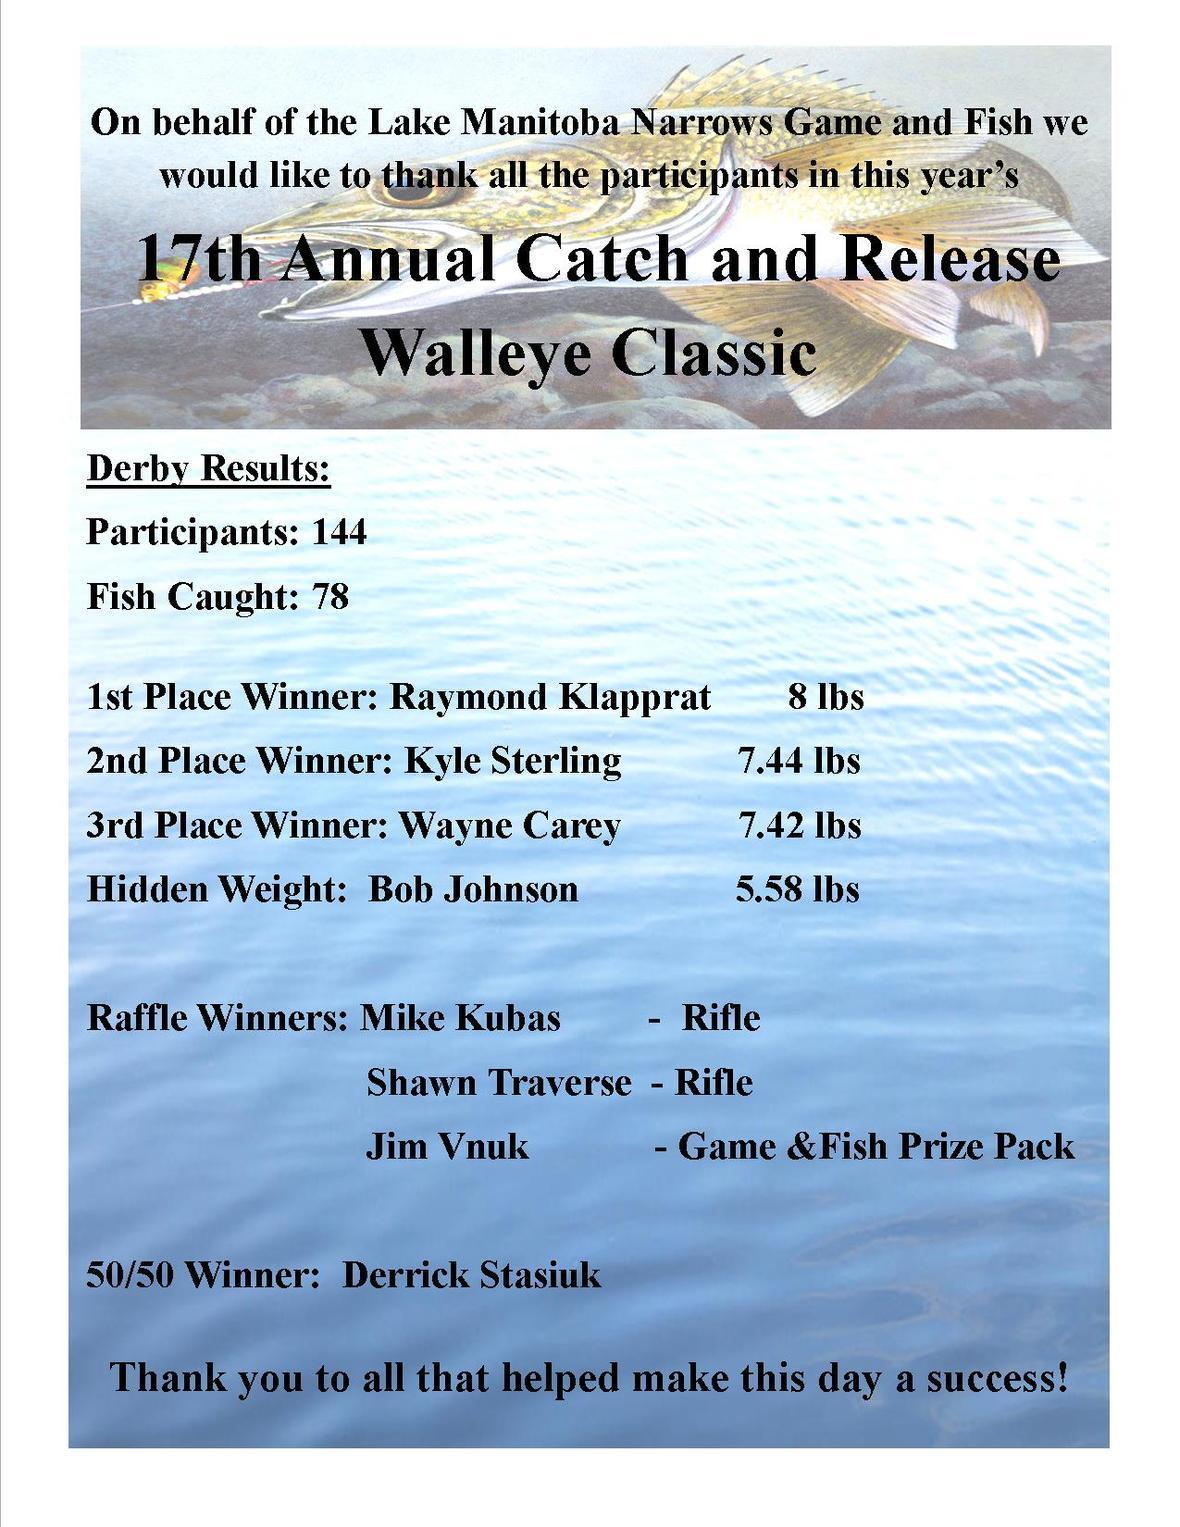 17th annual Walleye Classic results